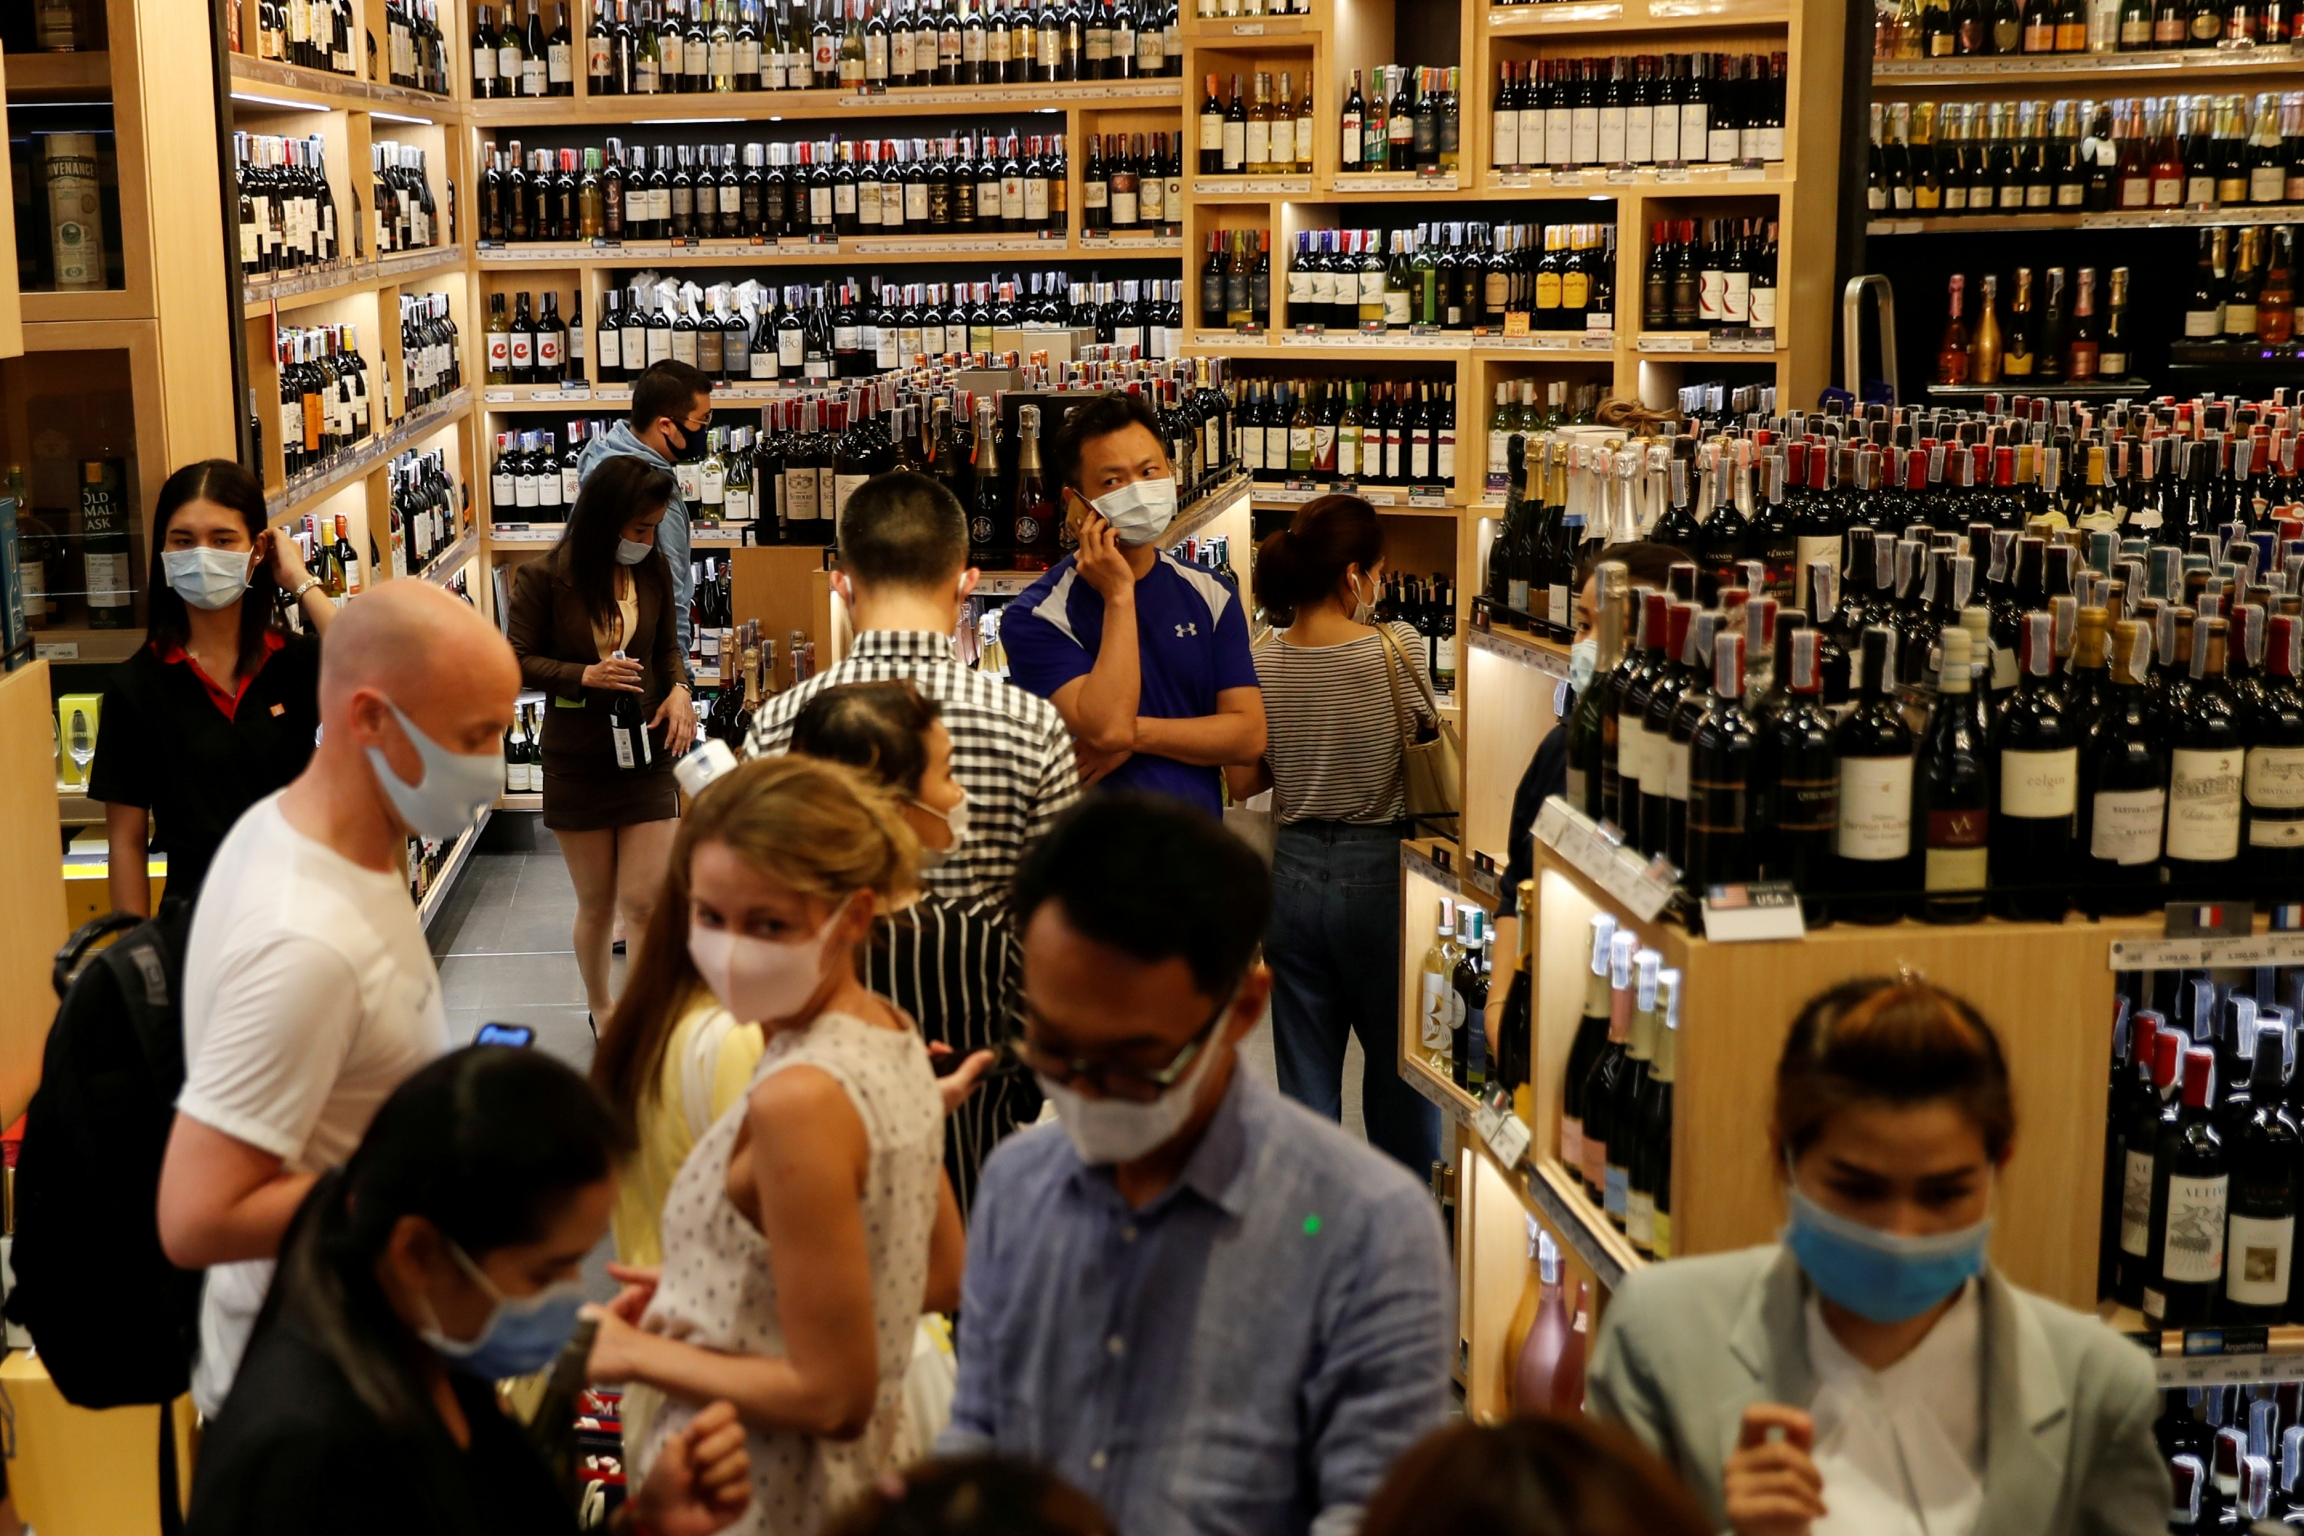 People line up inside a crowded liquor shop after Bangkok and several other provinces announced a 10-day ban on alcohol sale starting April 10 during the coronavirus outbreak in Bangkok, Thailand, April 9, 2020.